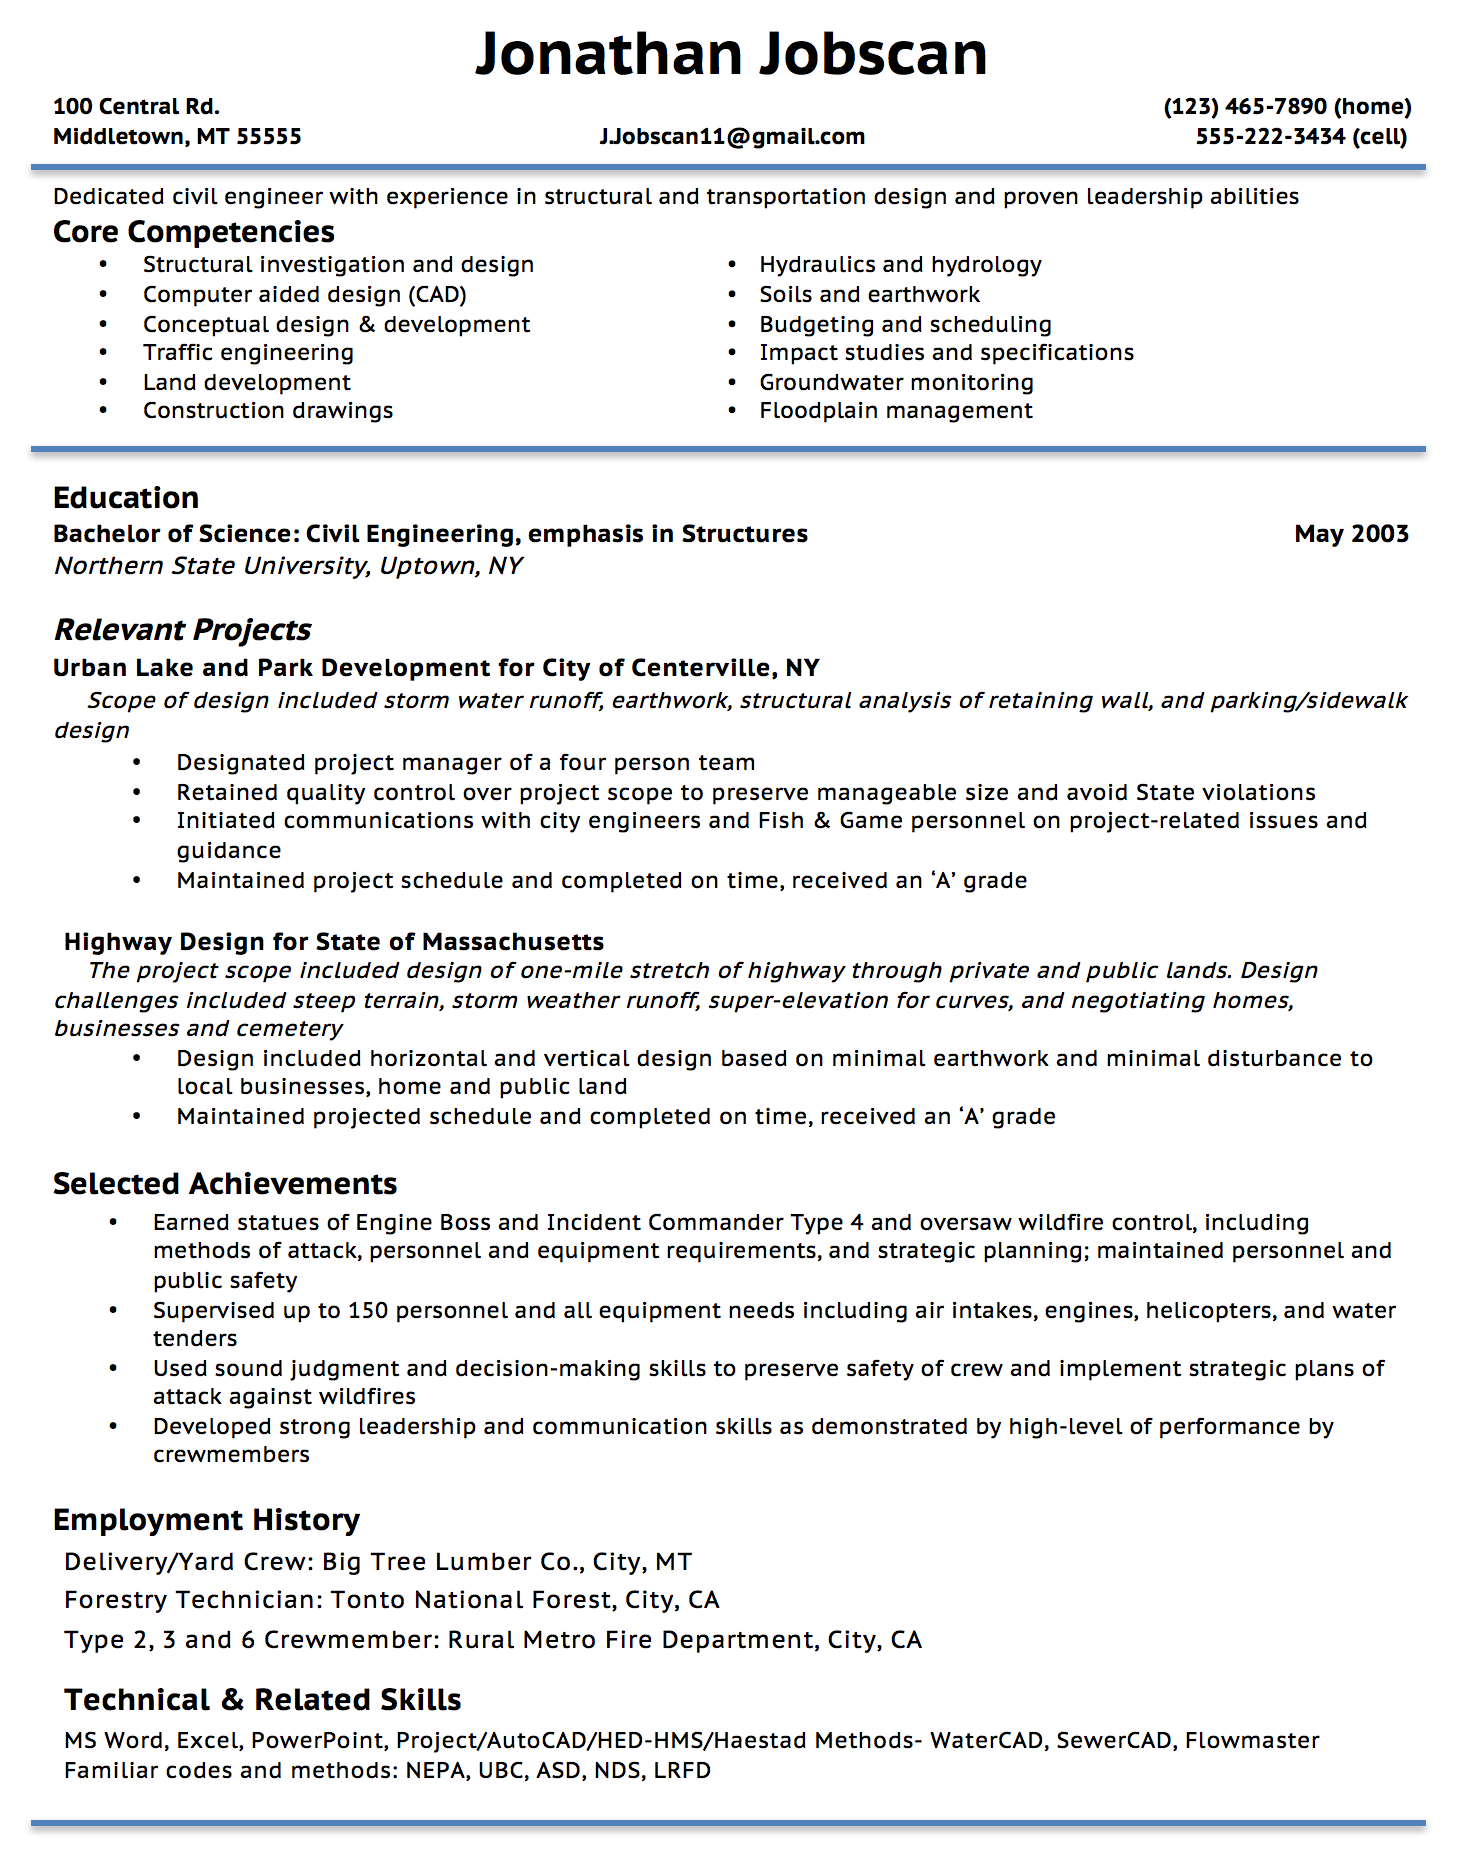 Picnictoimpeachus  Outstanding Resume Writing Guide  Jobscan With Handsome Example Of A Functional Resume Format With Awesome Research Skills Resume Also Achievements For Resume In Addition Resume For Truck Driver And Job Skills Resume As Well As Length Of Resume Additionally Resume References Example From Jobscanco With Picnictoimpeachus  Handsome Resume Writing Guide  Jobscan With Awesome Example Of A Functional Resume Format And Outstanding Research Skills Resume Also Achievements For Resume In Addition Resume For Truck Driver From Jobscanco